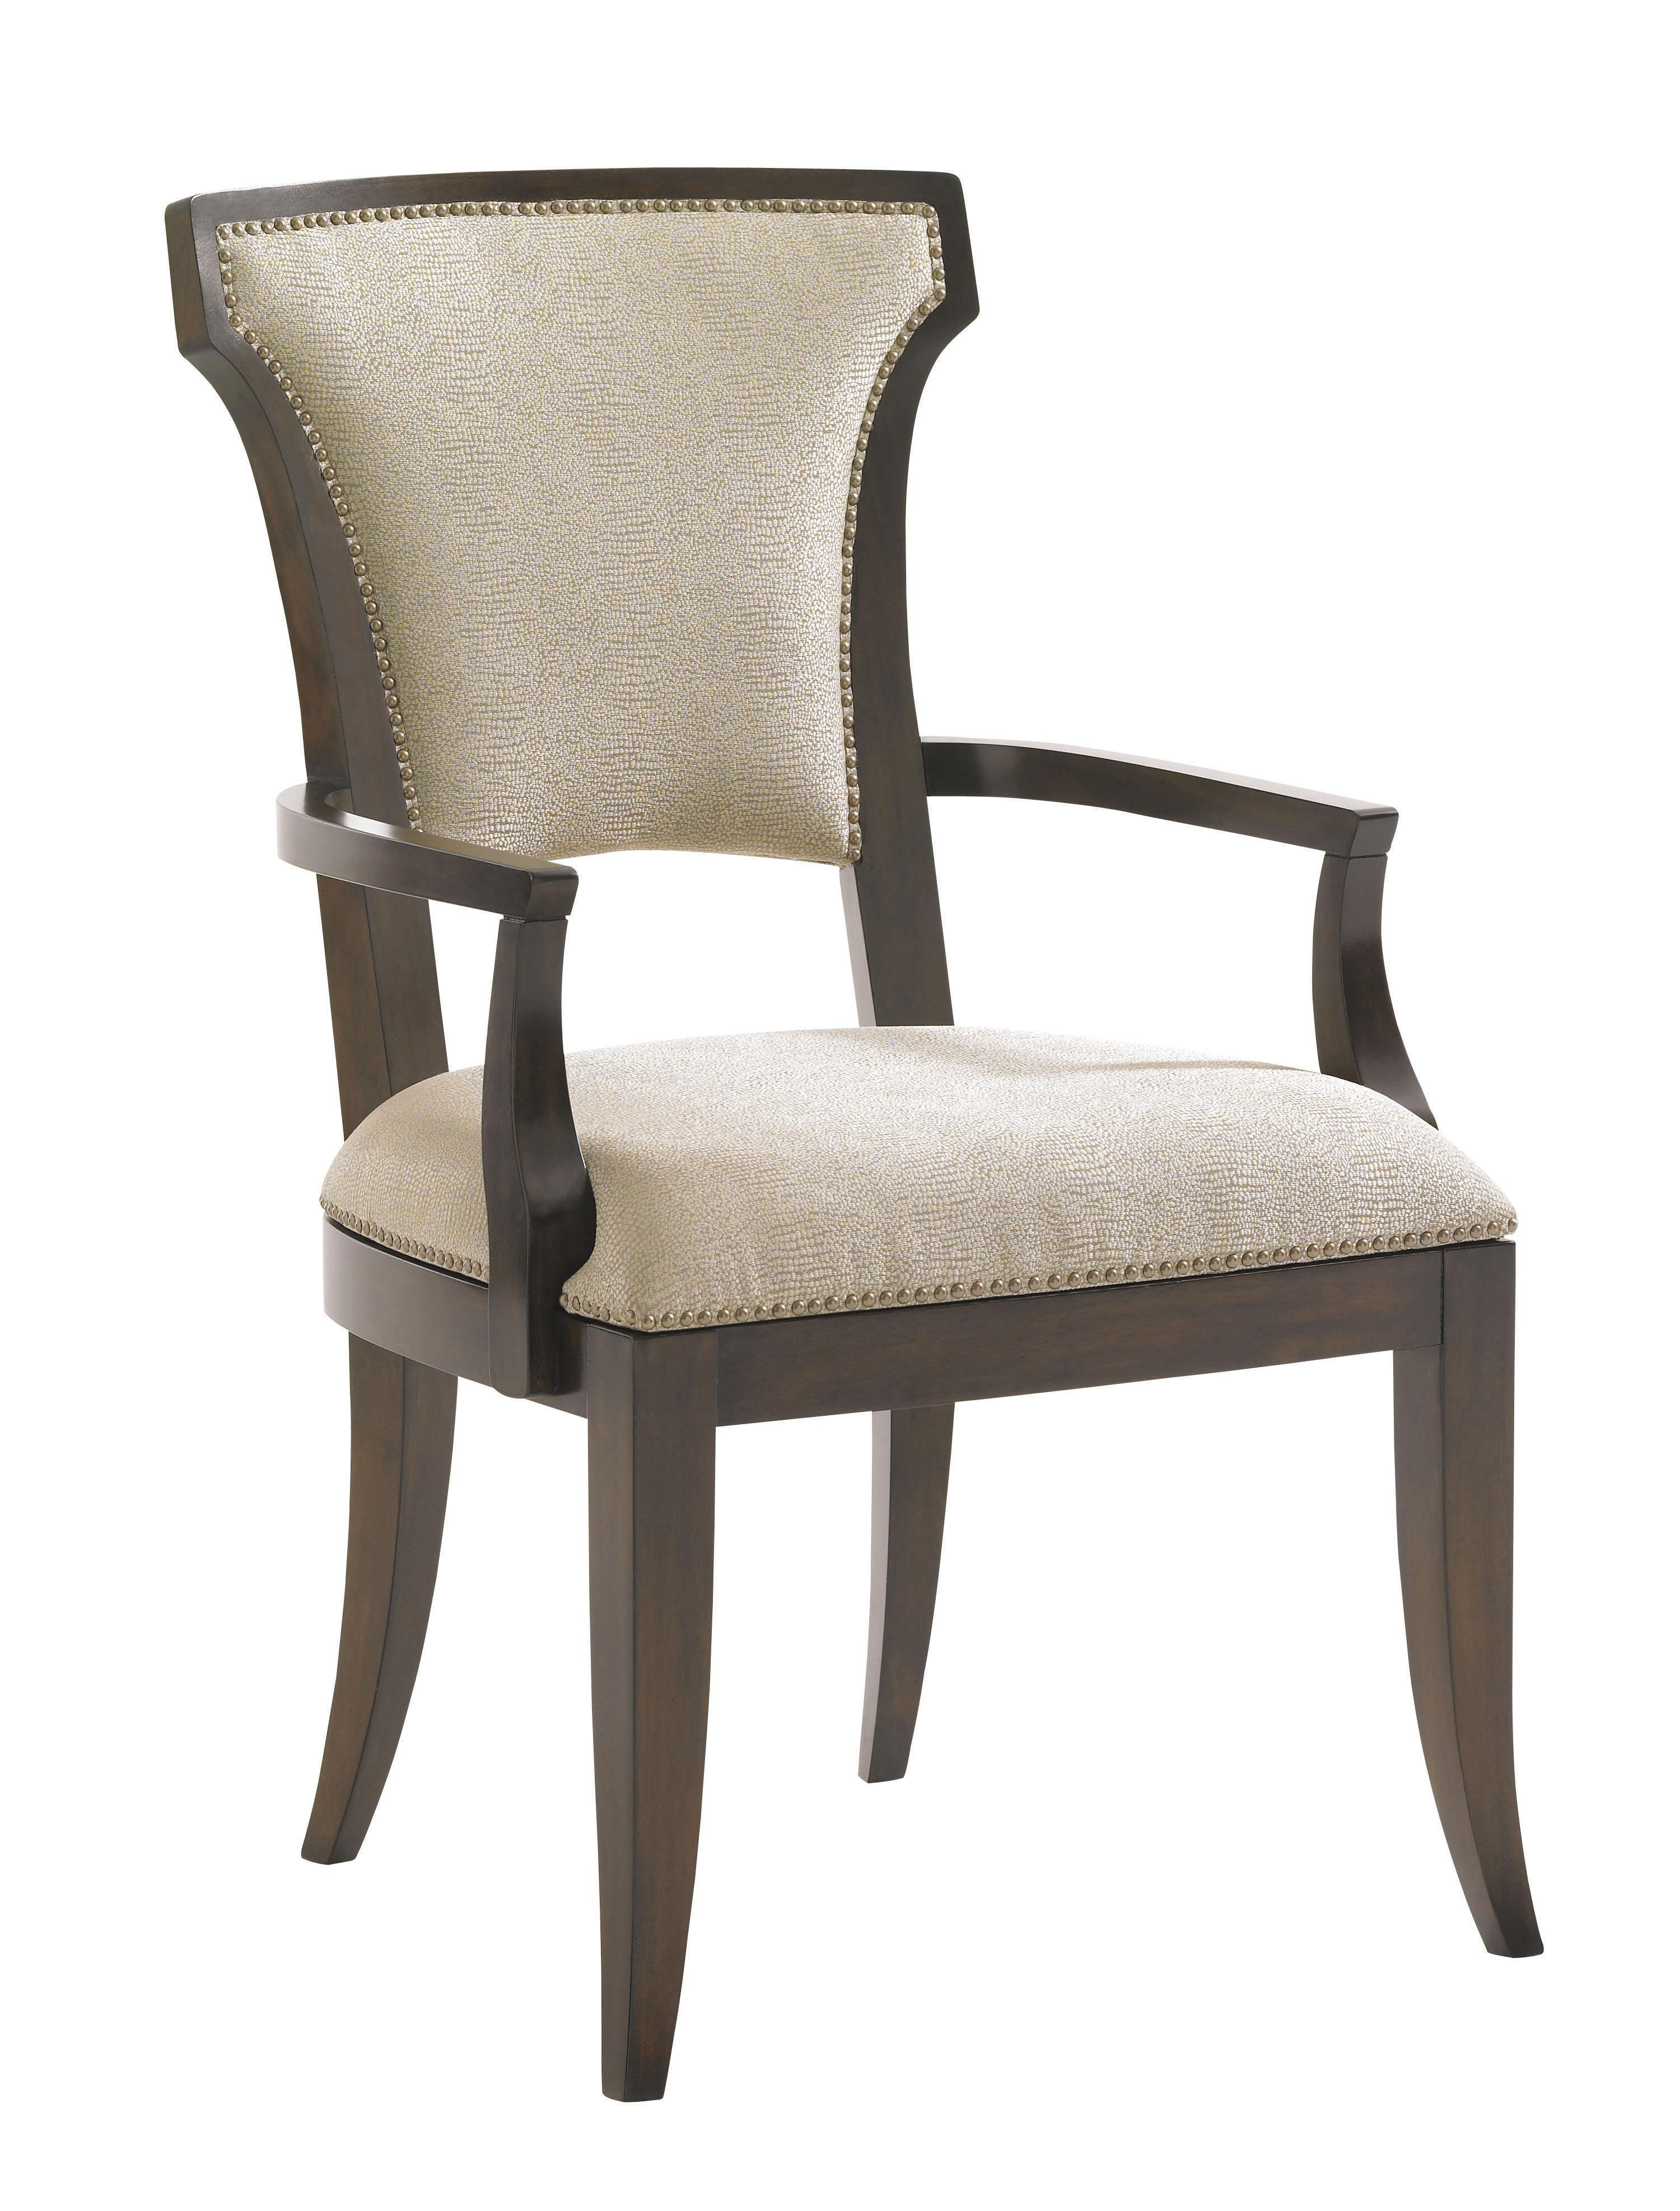 Tower Place Seneca Arm Chair w/ Married Fabric by Lexington at Johnny Janosik